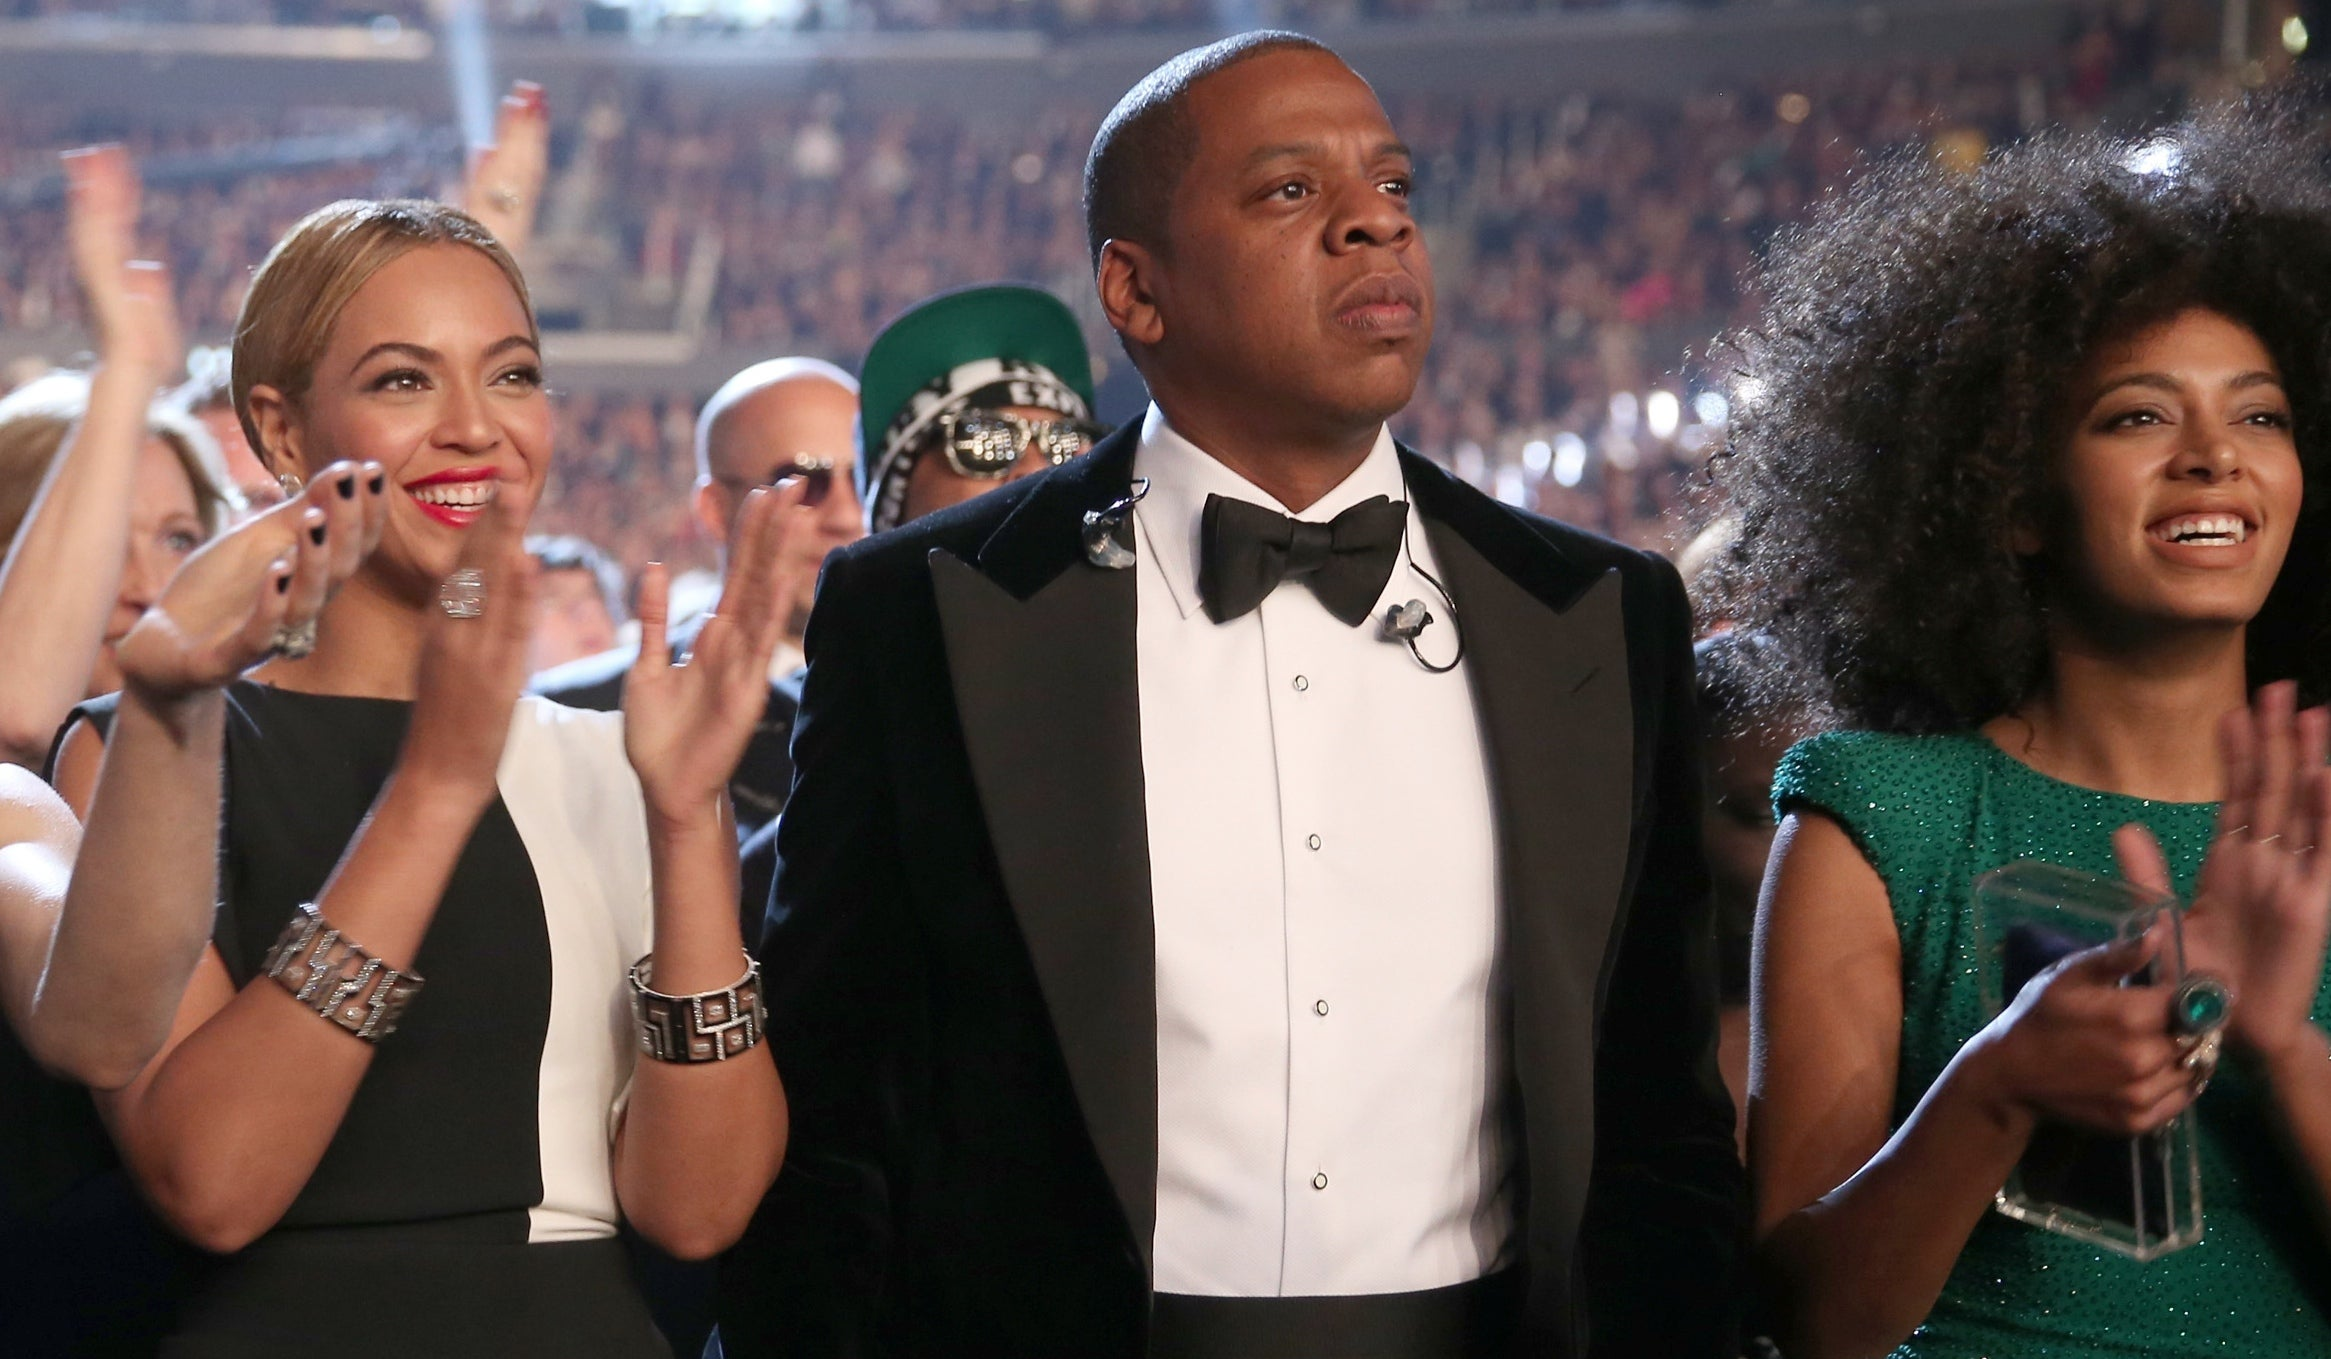 Beyoncé, Jay Z, Solange Issue Statement: 'We've Put This Behind Us'